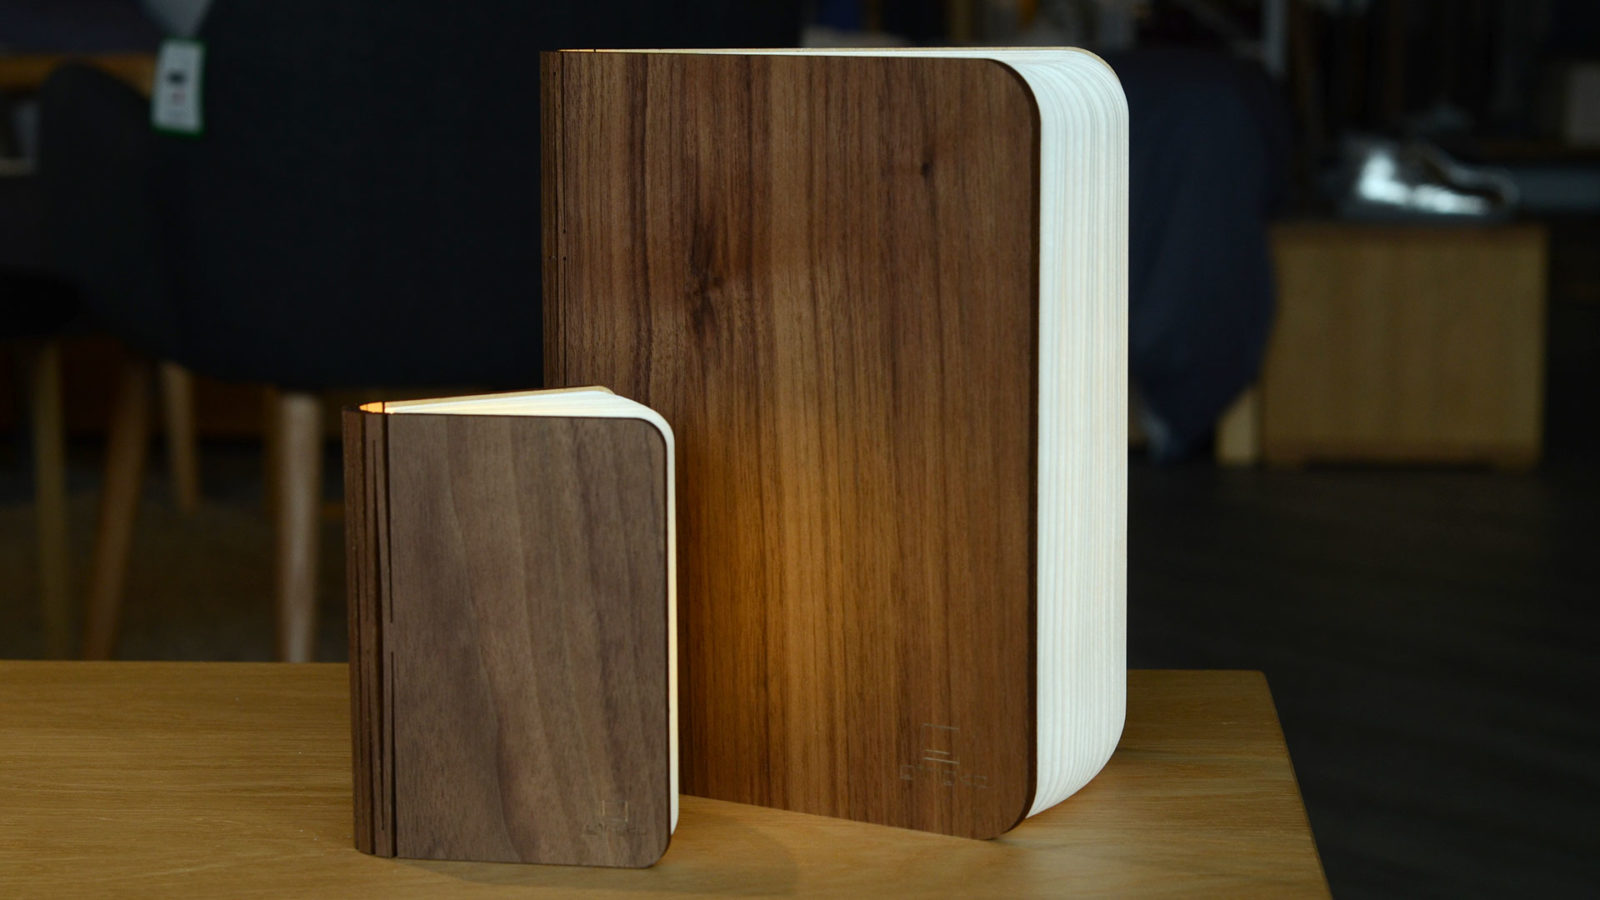 walnut-extra-large-book-light-with-small-book-light